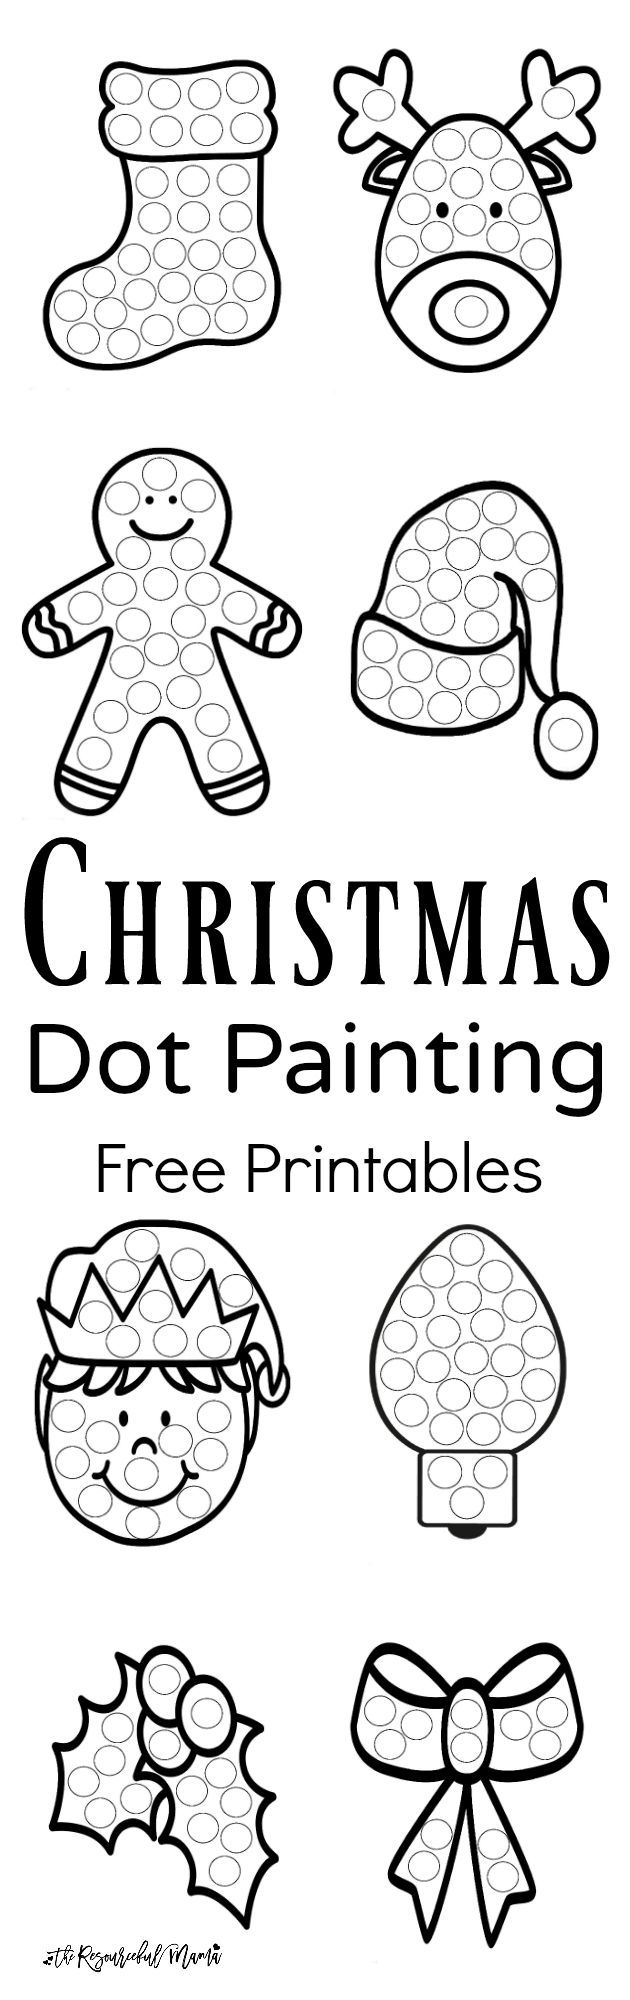 Christmas Dot Painting Free Printables – Printable Christmas Worksheets